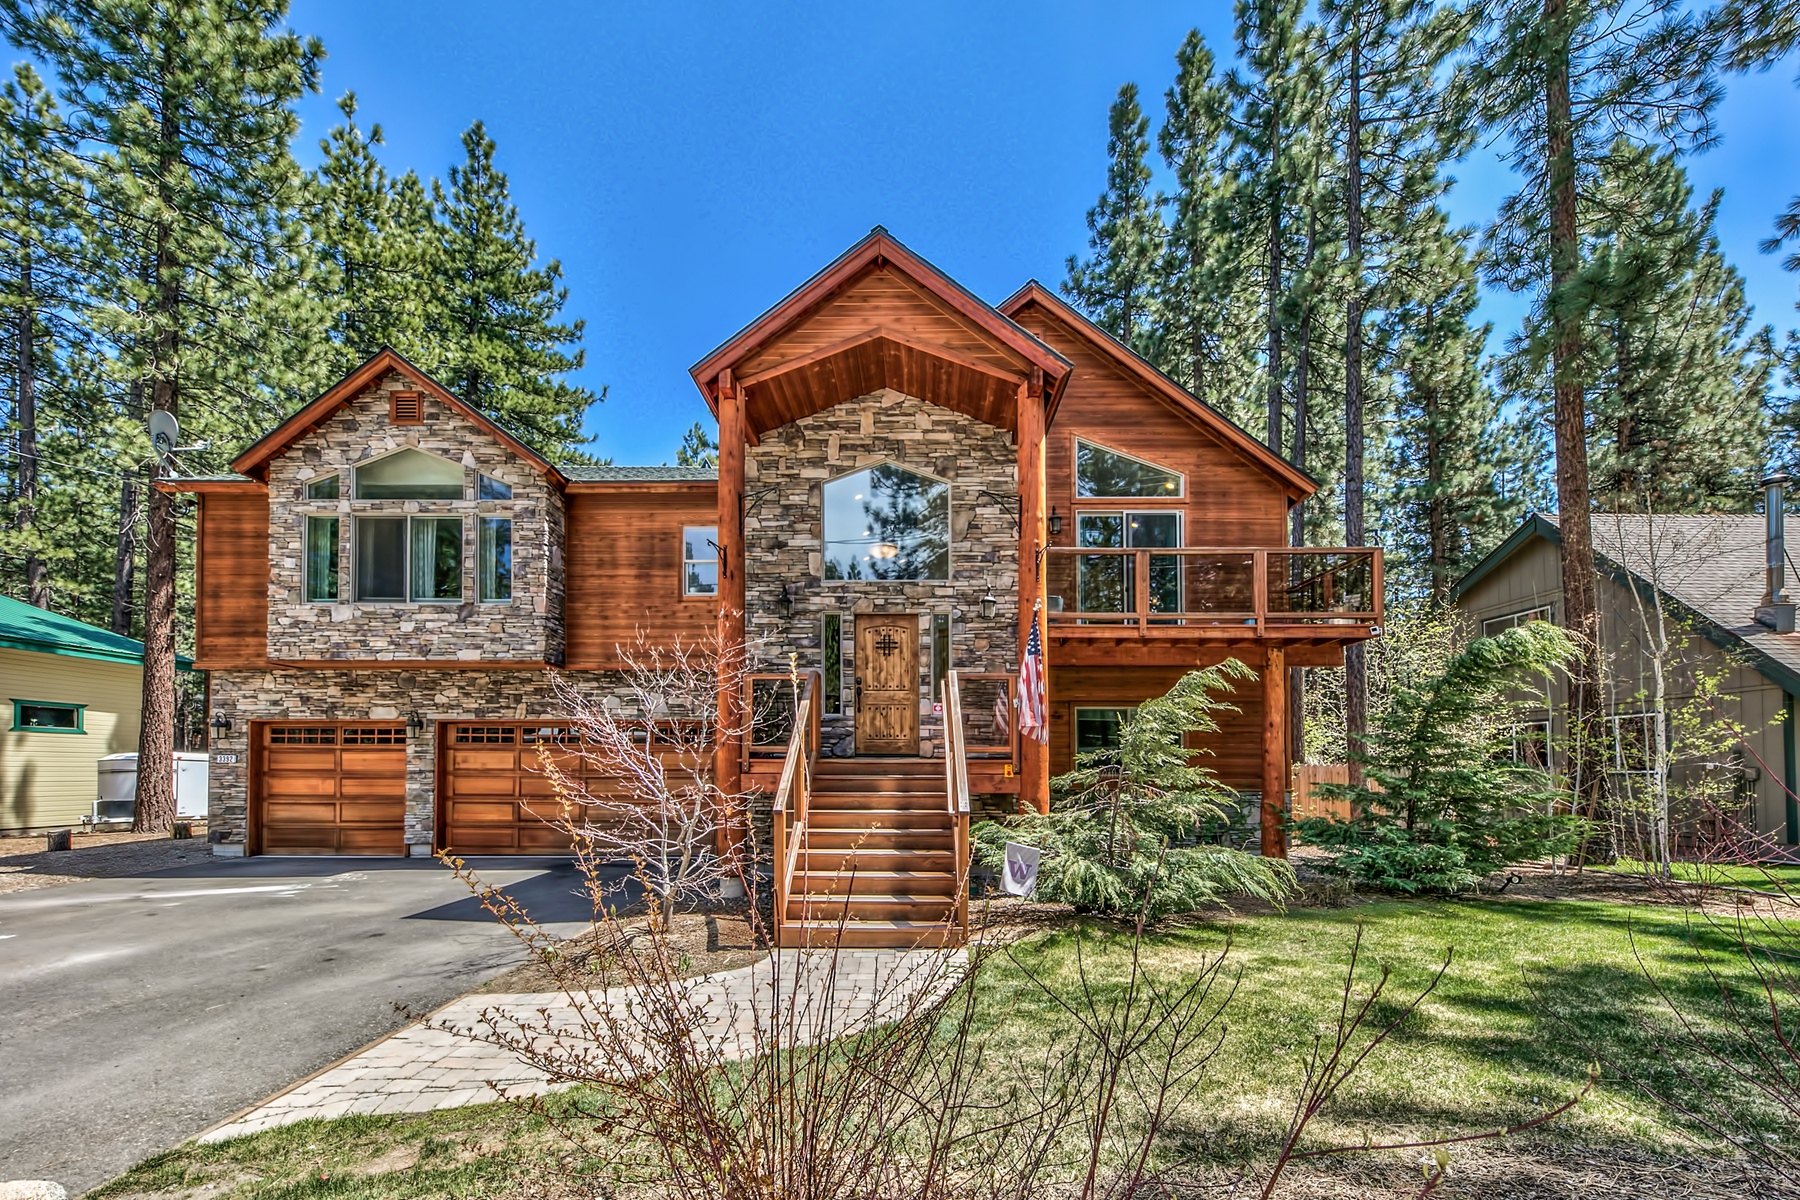 single family homes for Active at 3392 Hobart Rd., South Lake Tahoe, CA 3392 Hobart Rd. South Lake Tahoe, California 96150 United States